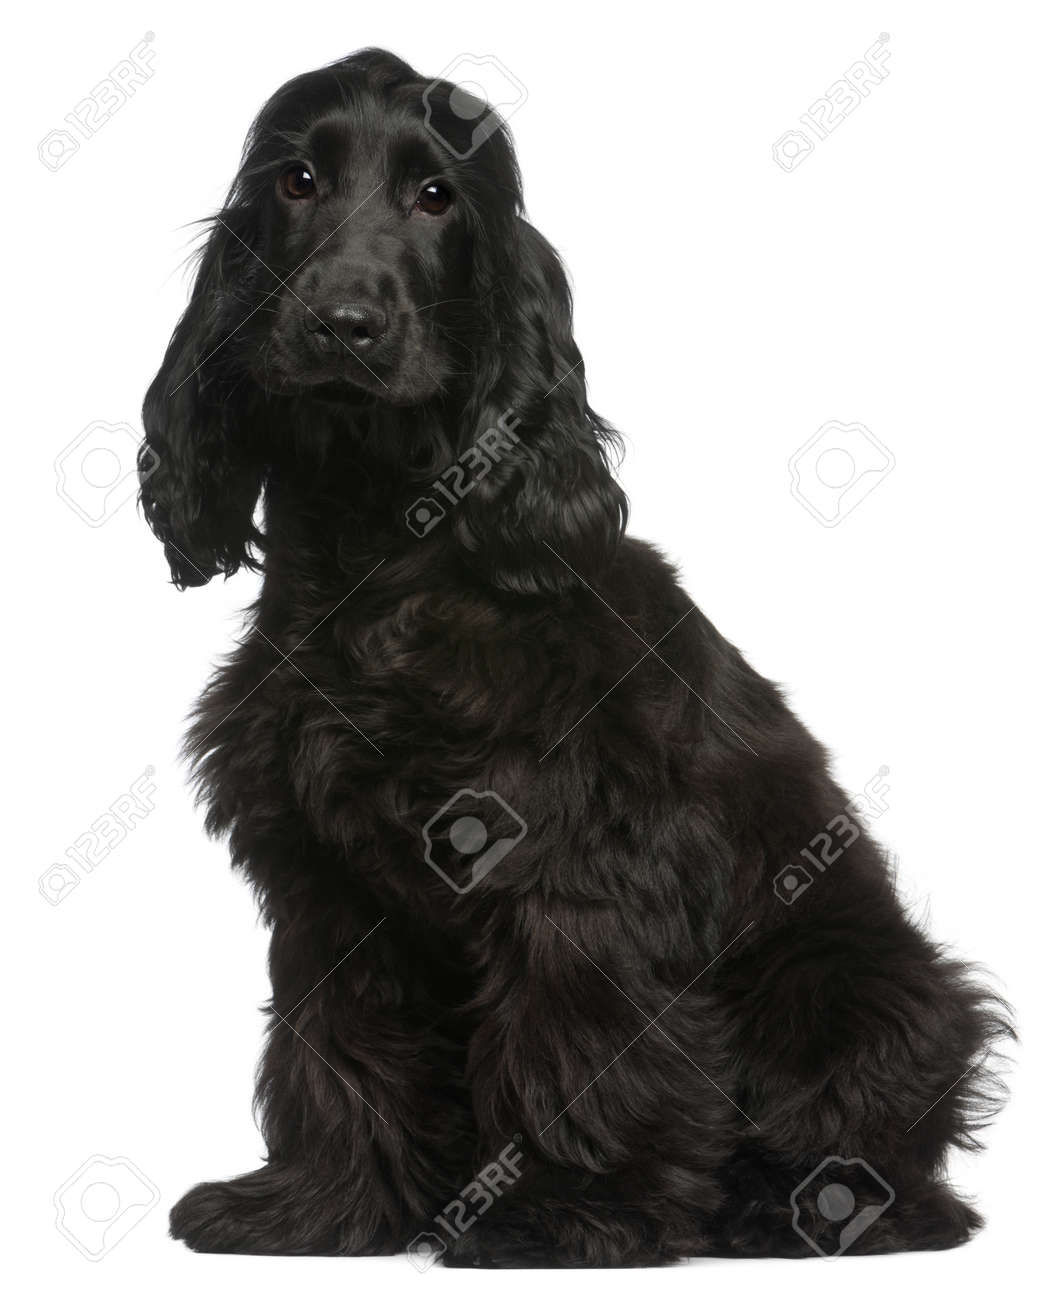 English Cocker Spaniel puppy, 5 months old, sitting in front of white background Stock Photo - 11568089